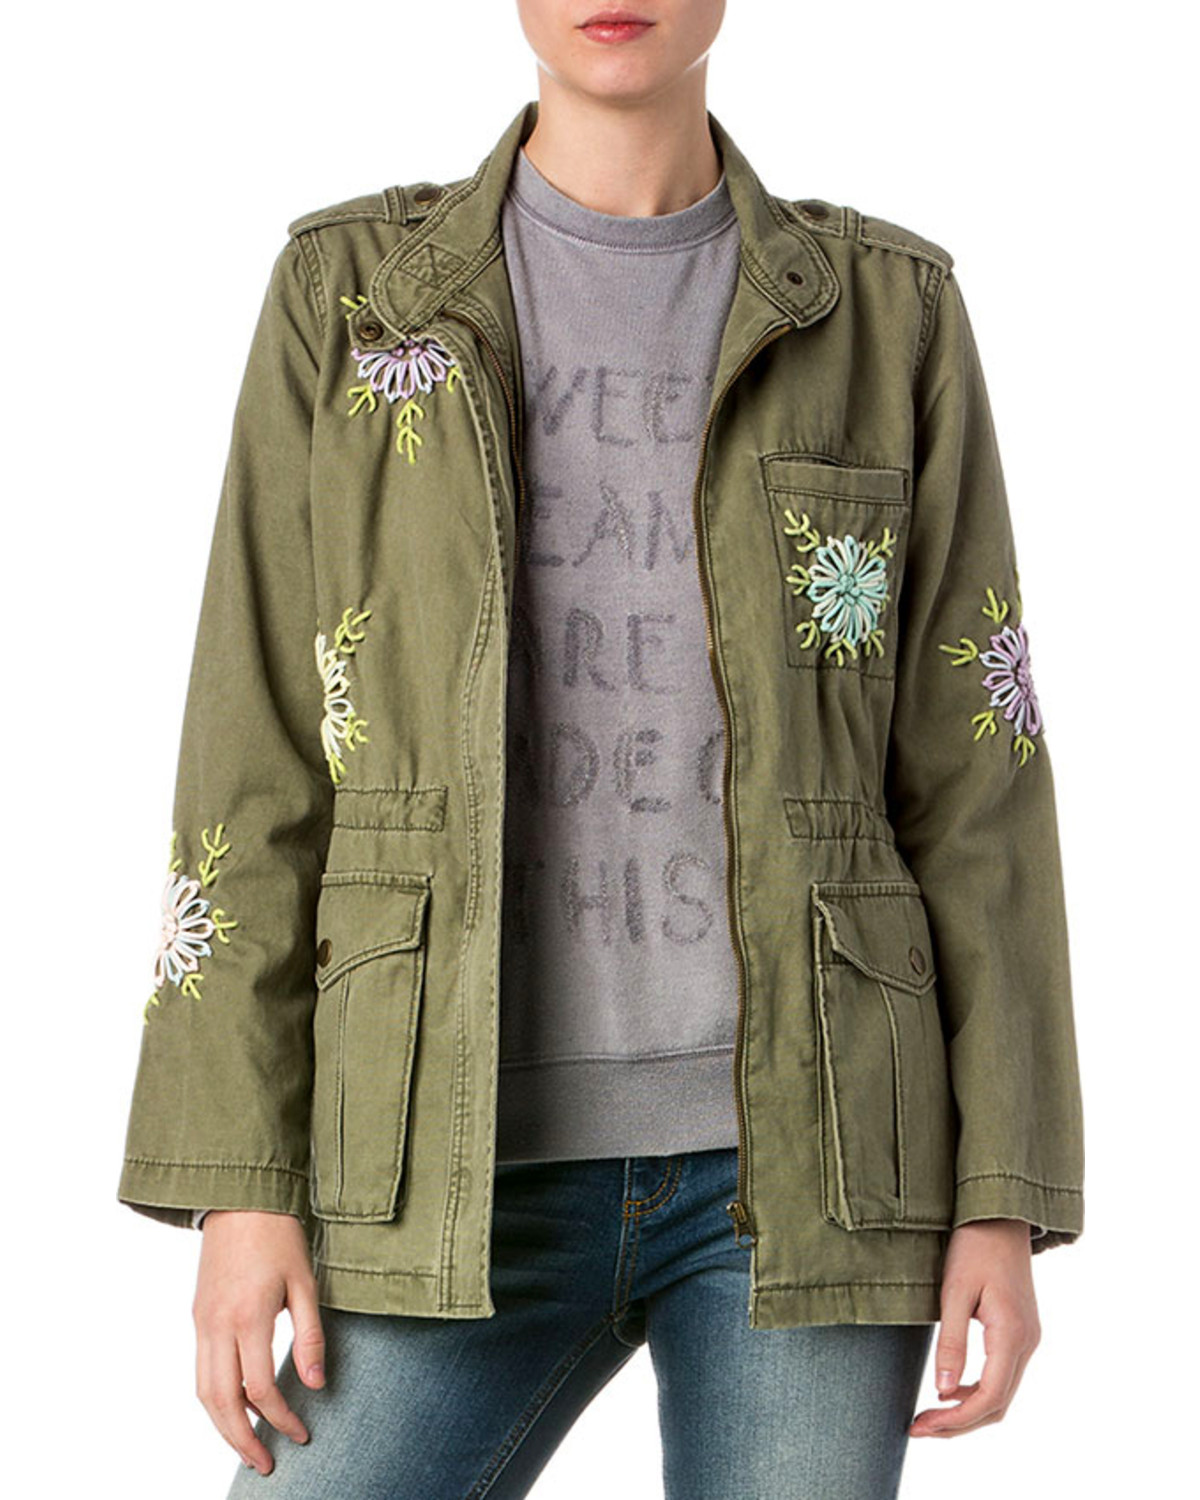 receive jackets nickernews barn womens coat barns to enter found pockets bengal side off at perfect checkout